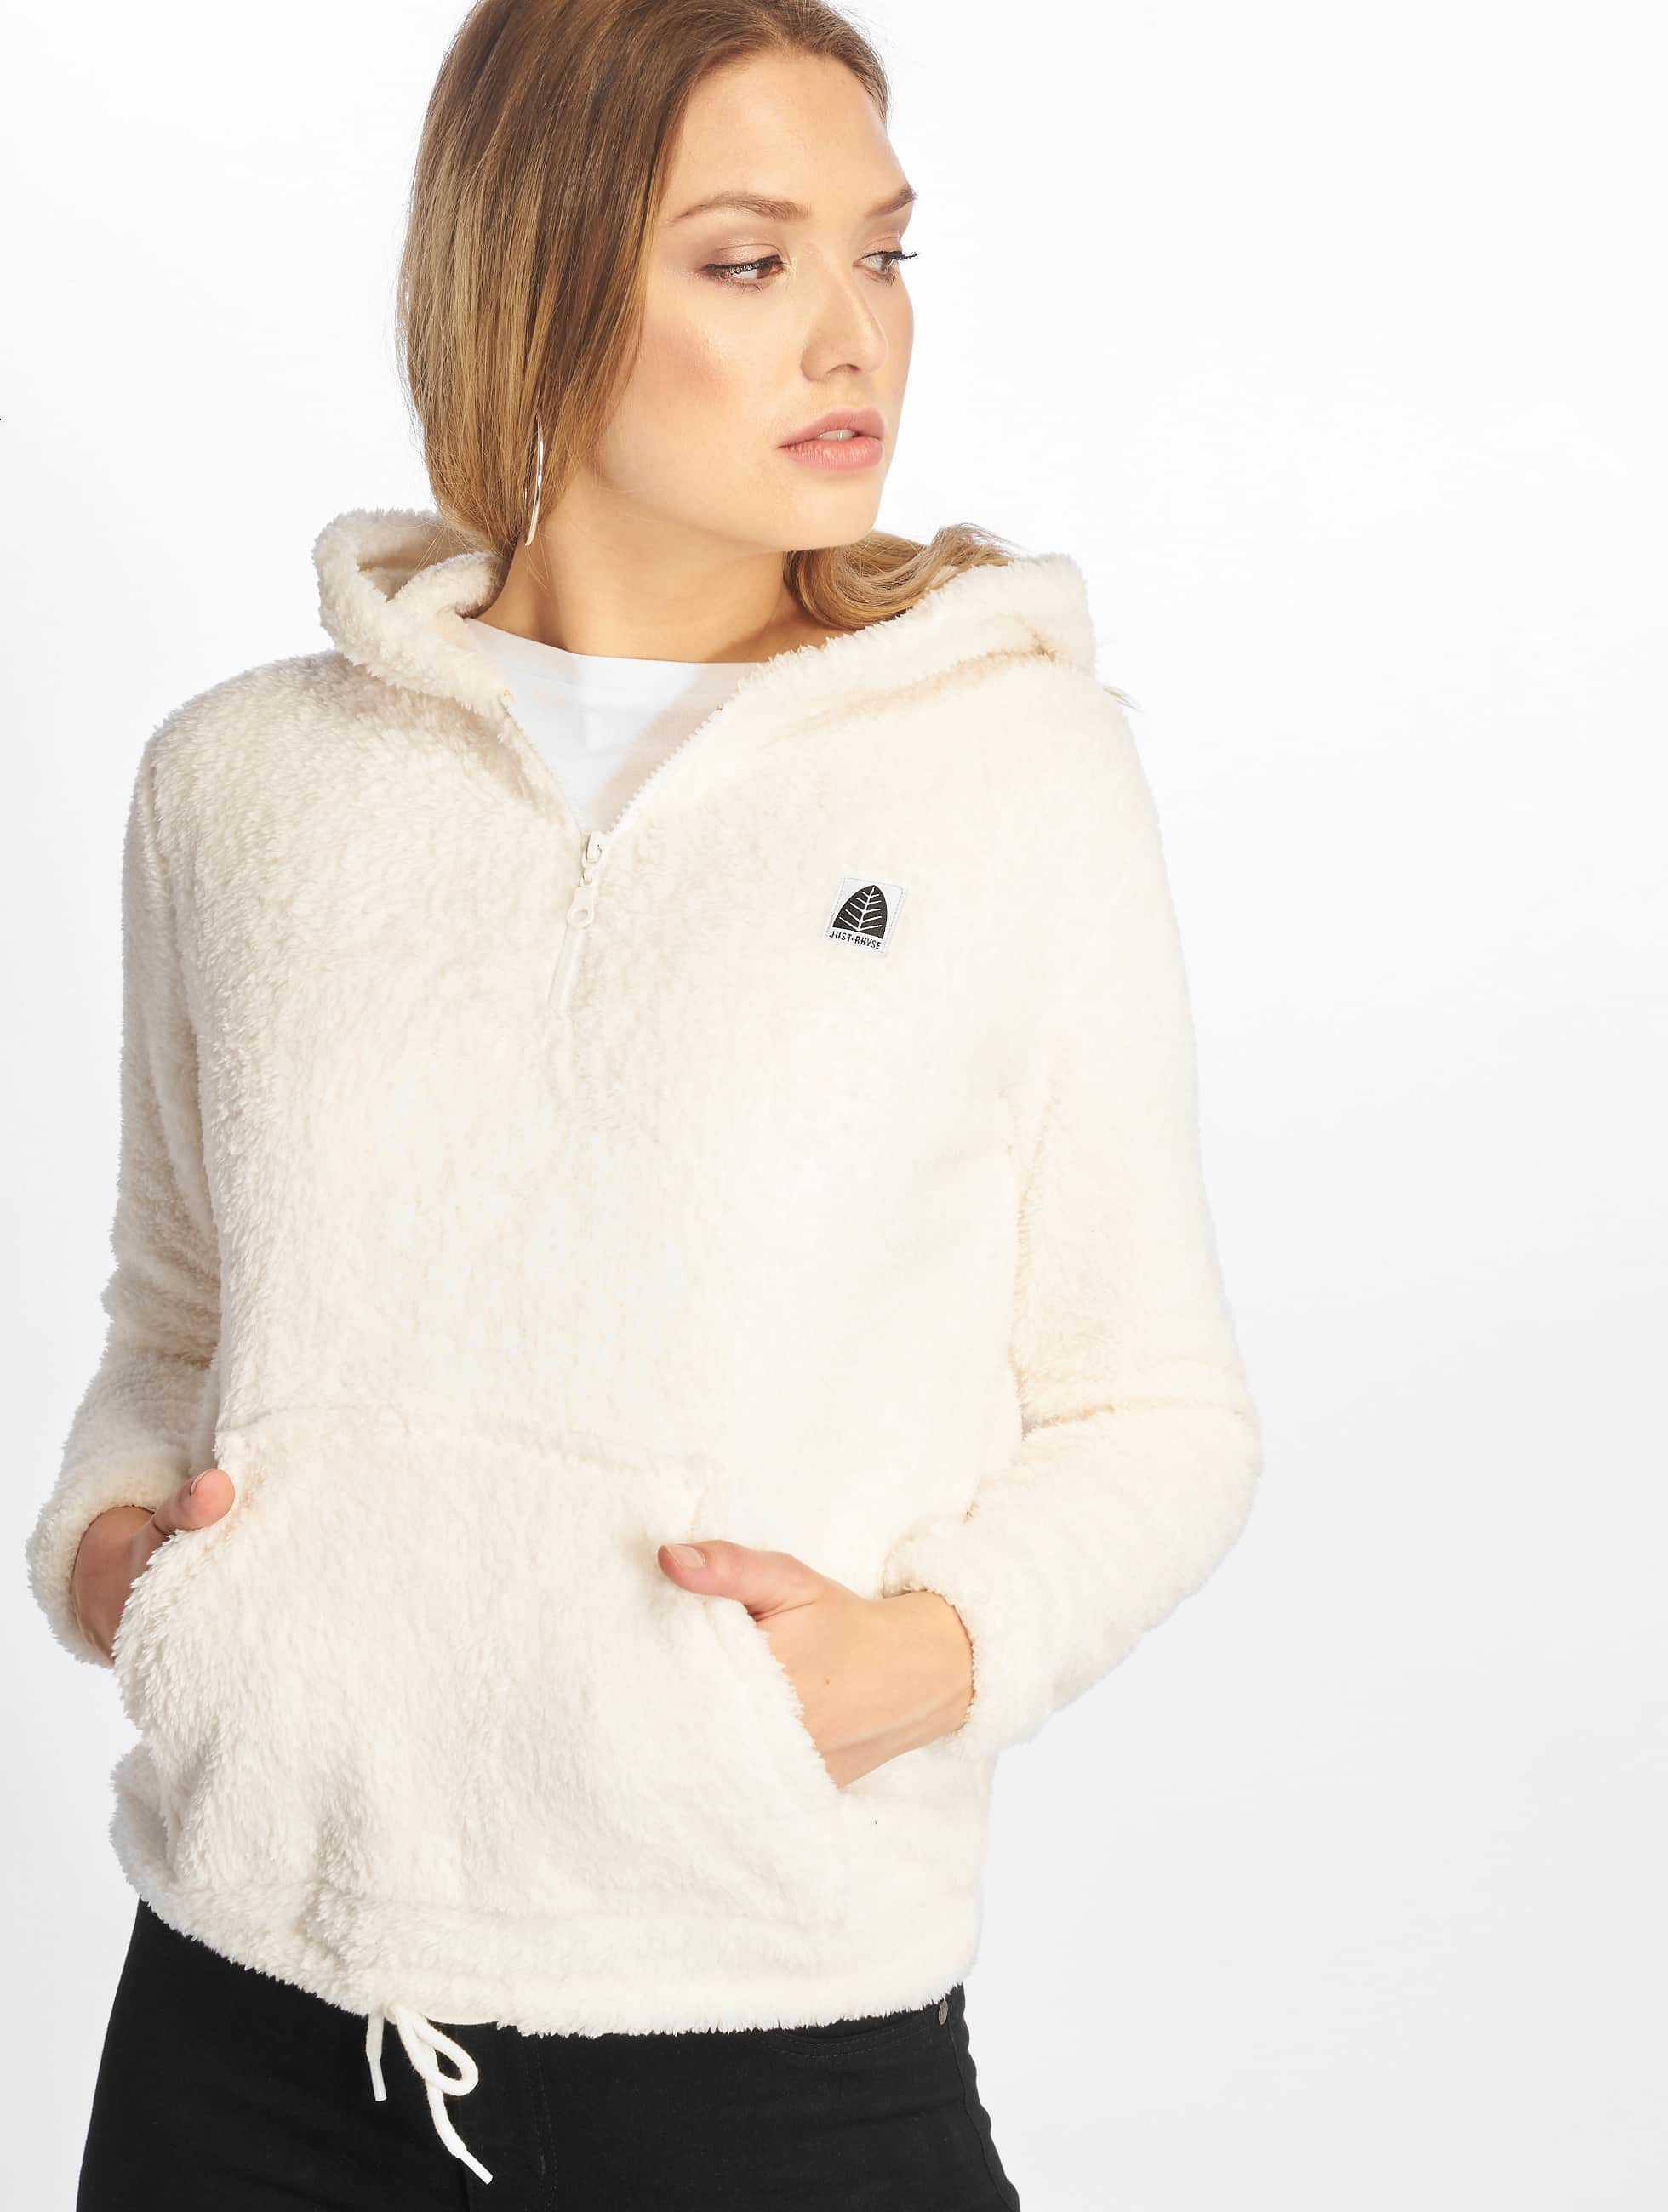 Just Rhyse / Hoodie Arequipa in white XL